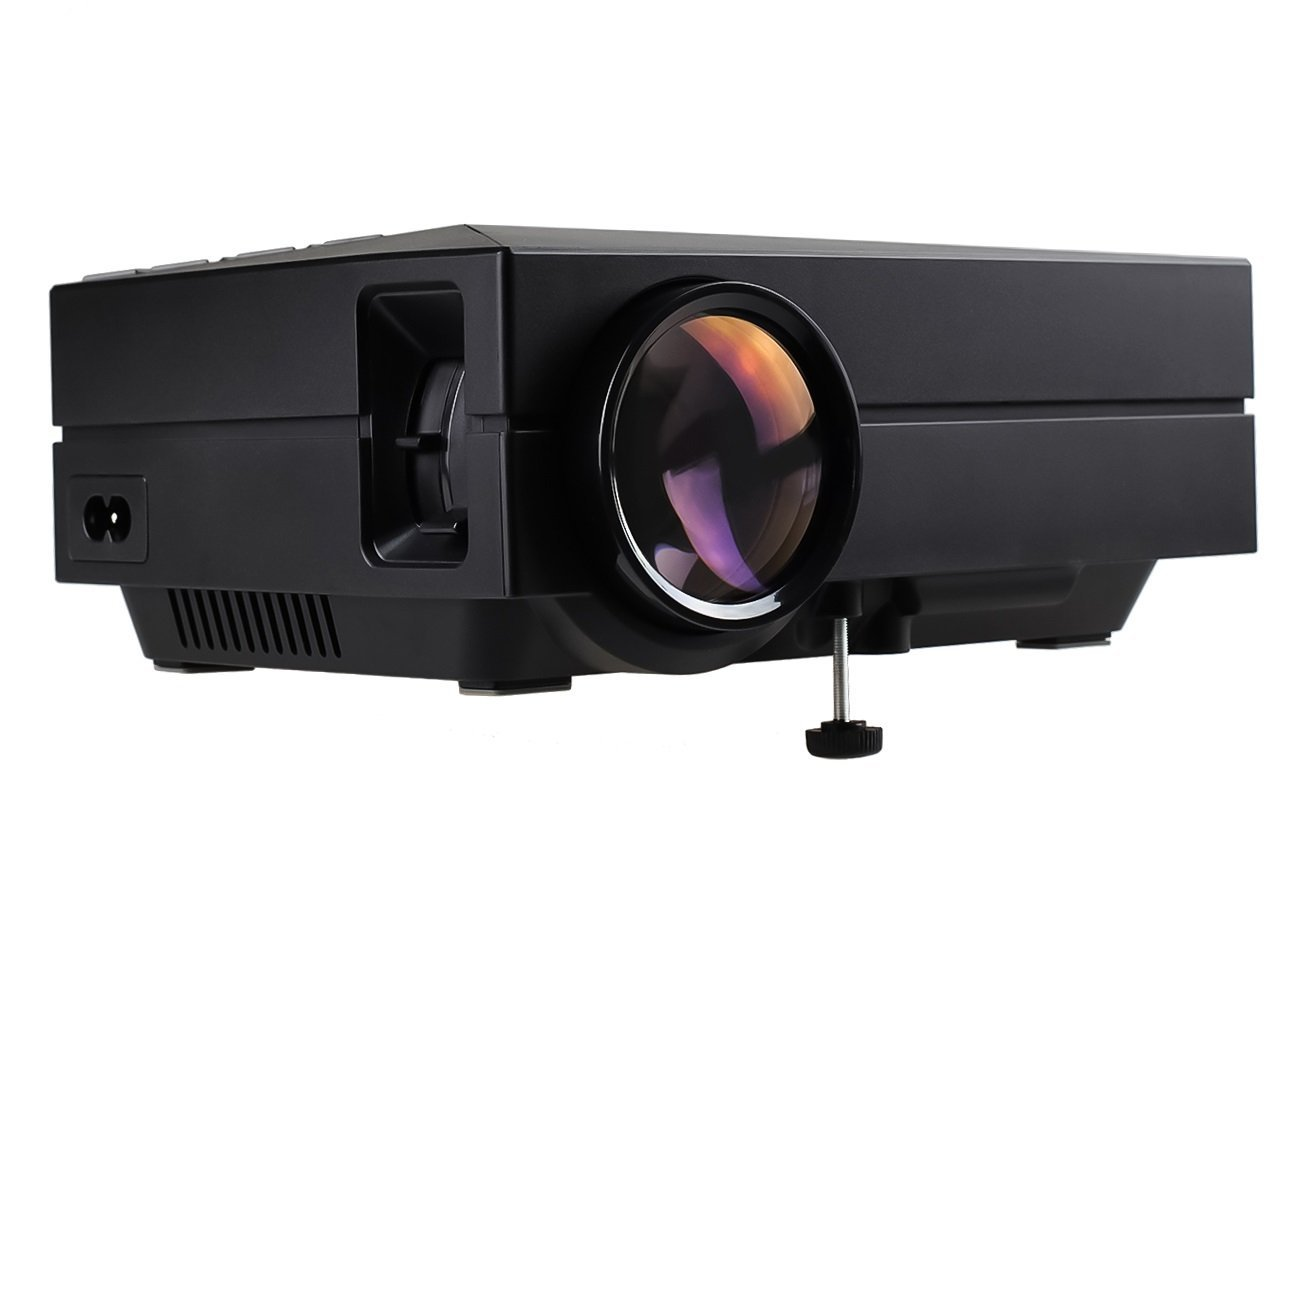 S1 LED LCD (WVGA) Mini Video Projector - International Version (No Warranty) - DIY Series - Black (FP8048S1-IV)